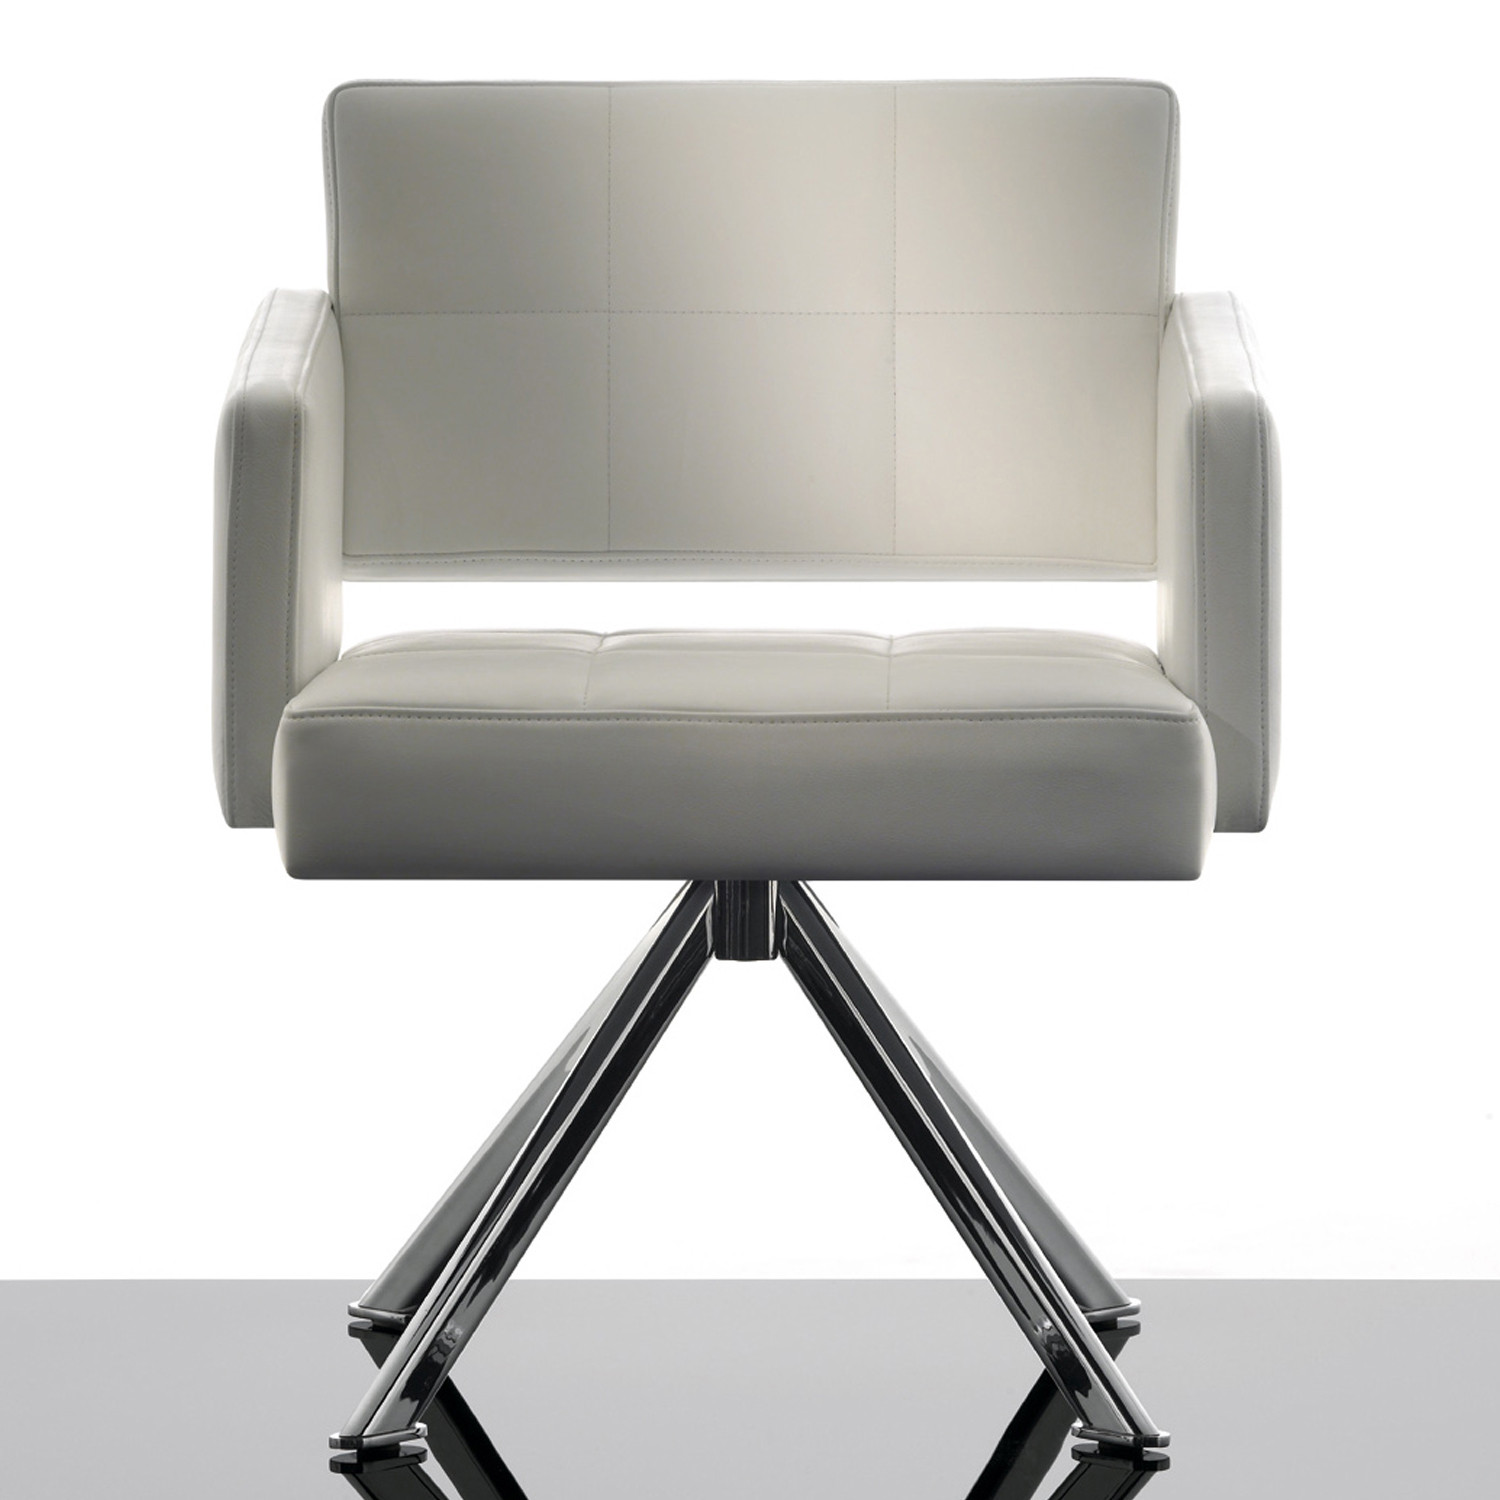 Xross Chair by Pledge Furniture